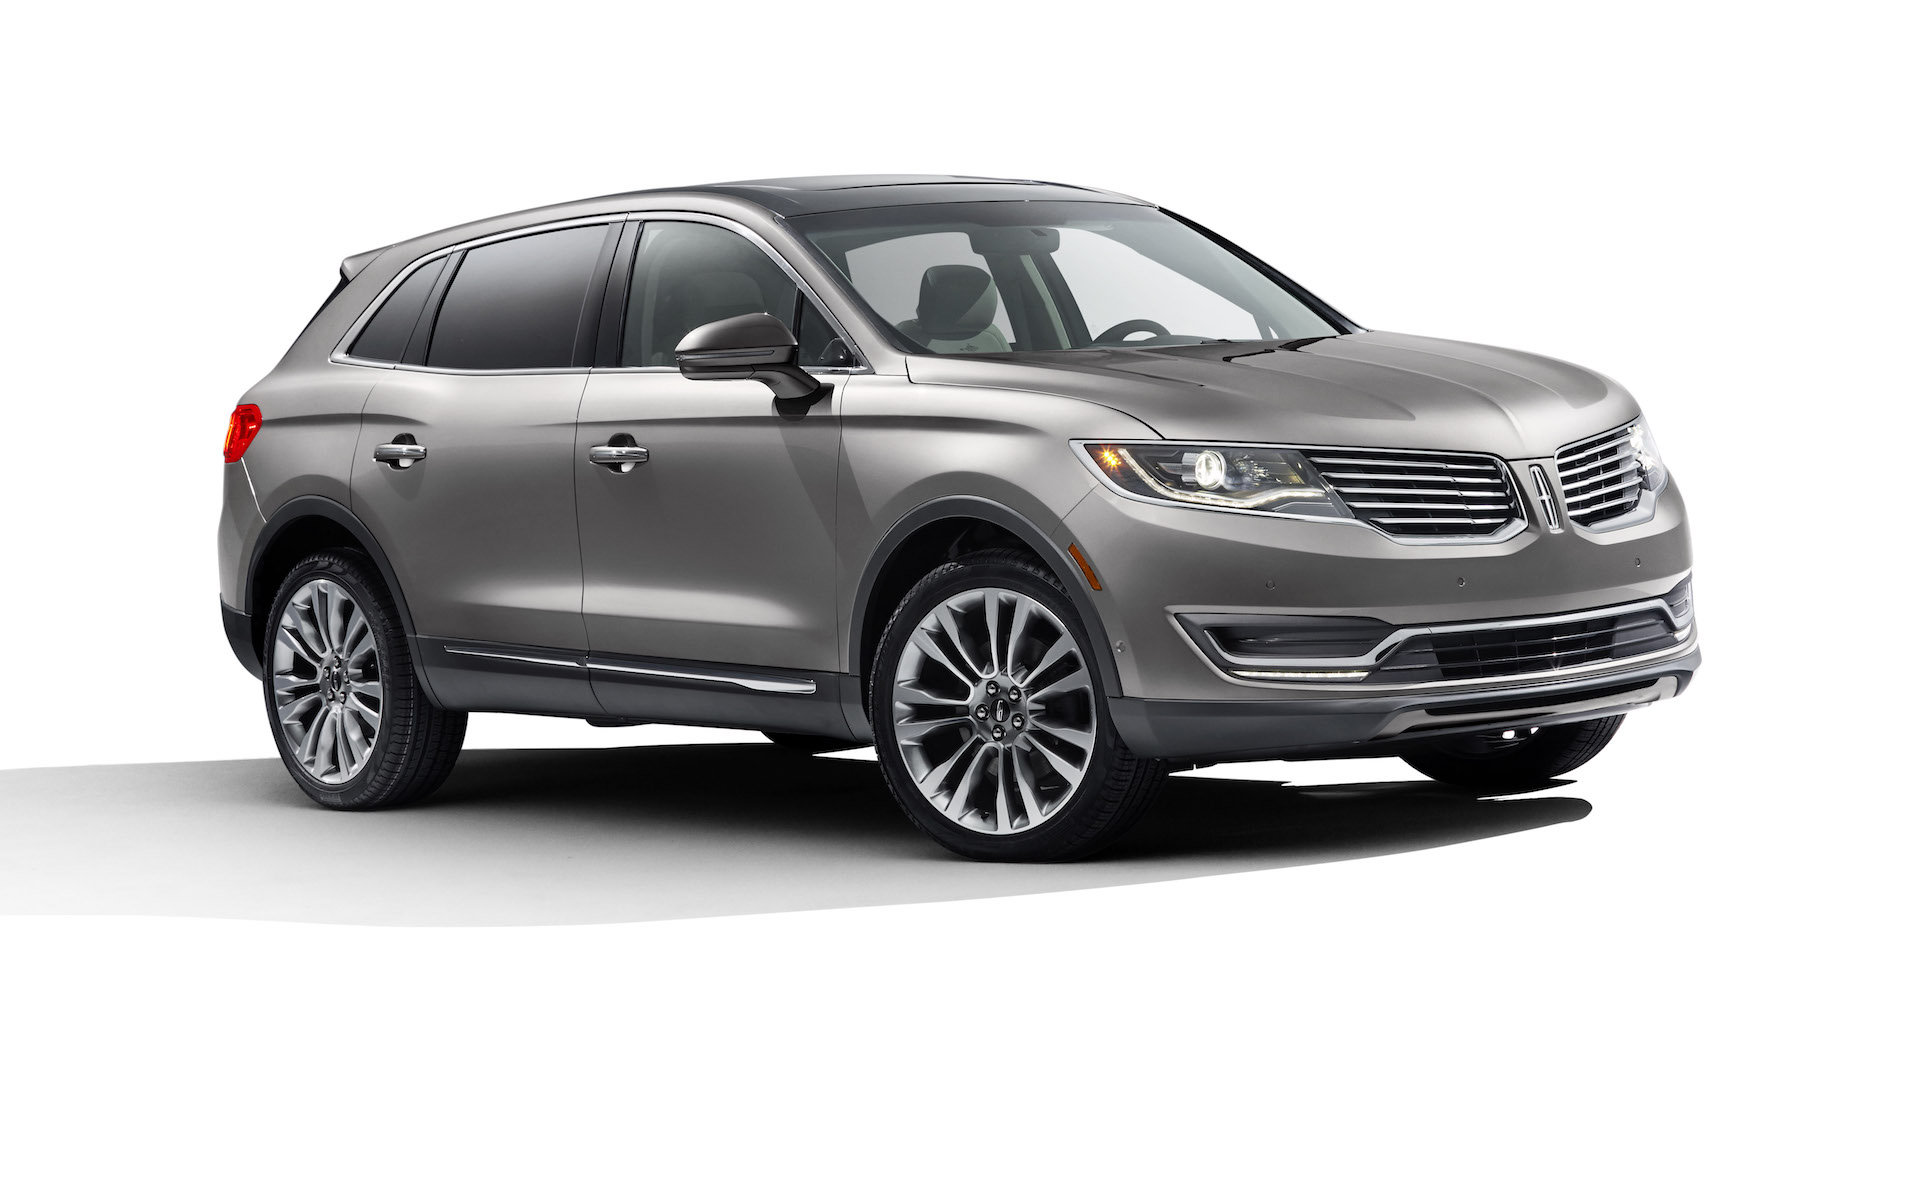 new and used lincoln mkx prices photos reviews specs. Black Bedroom Furniture Sets. Home Design Ideas